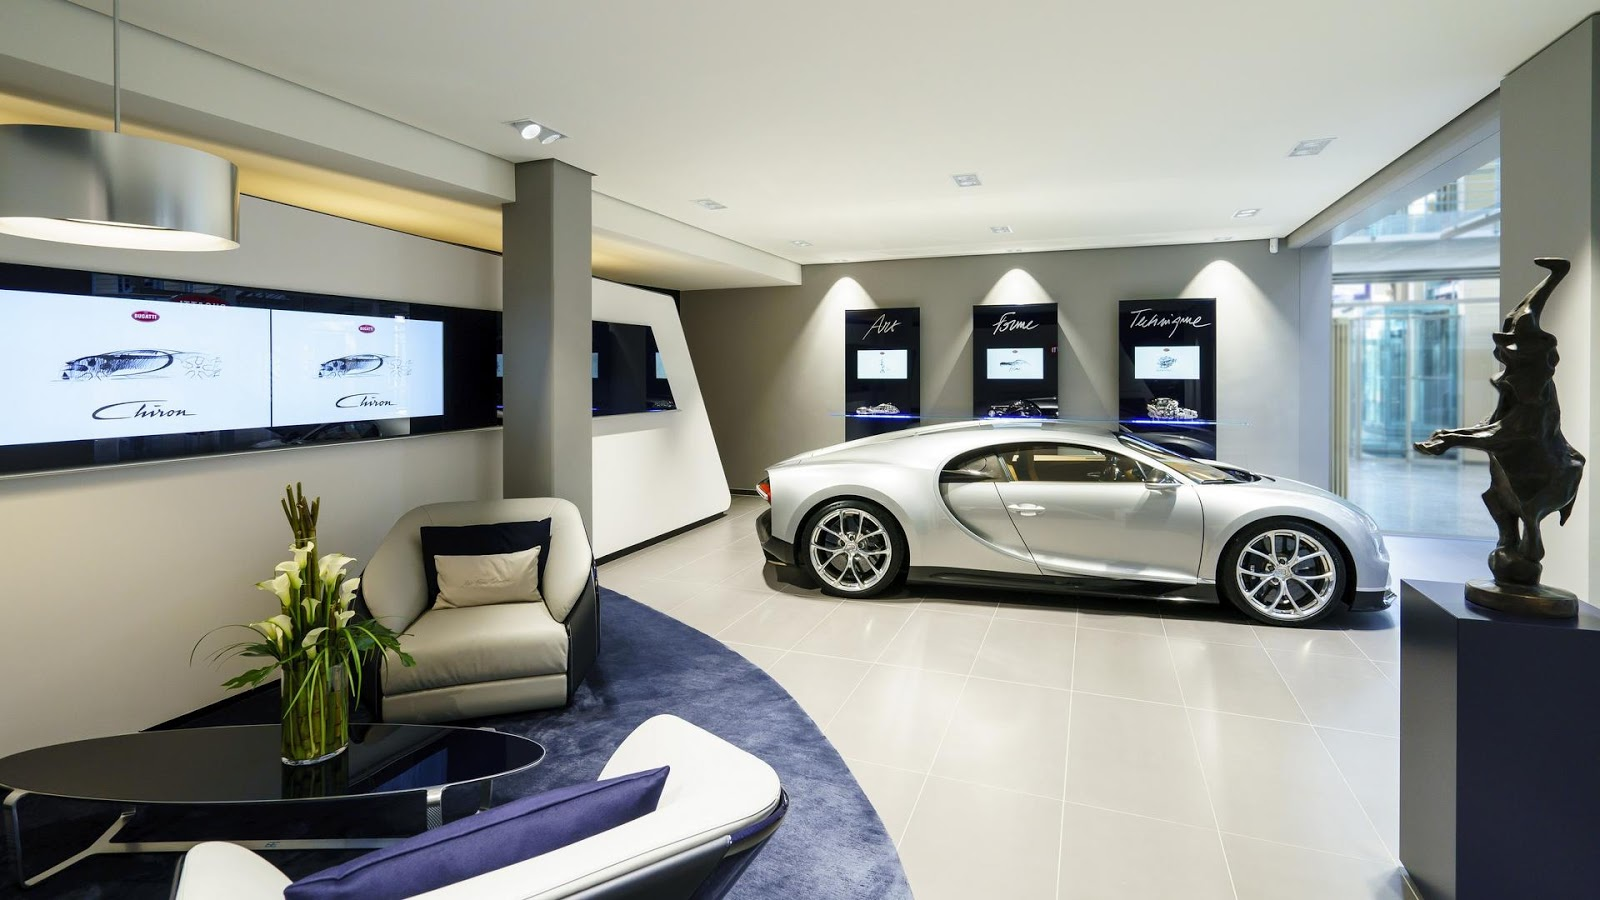 Lamborgini Sports Car Hd Wallpaper Bugatti Opens Showroom In Hamburg Following High Chiron Sales